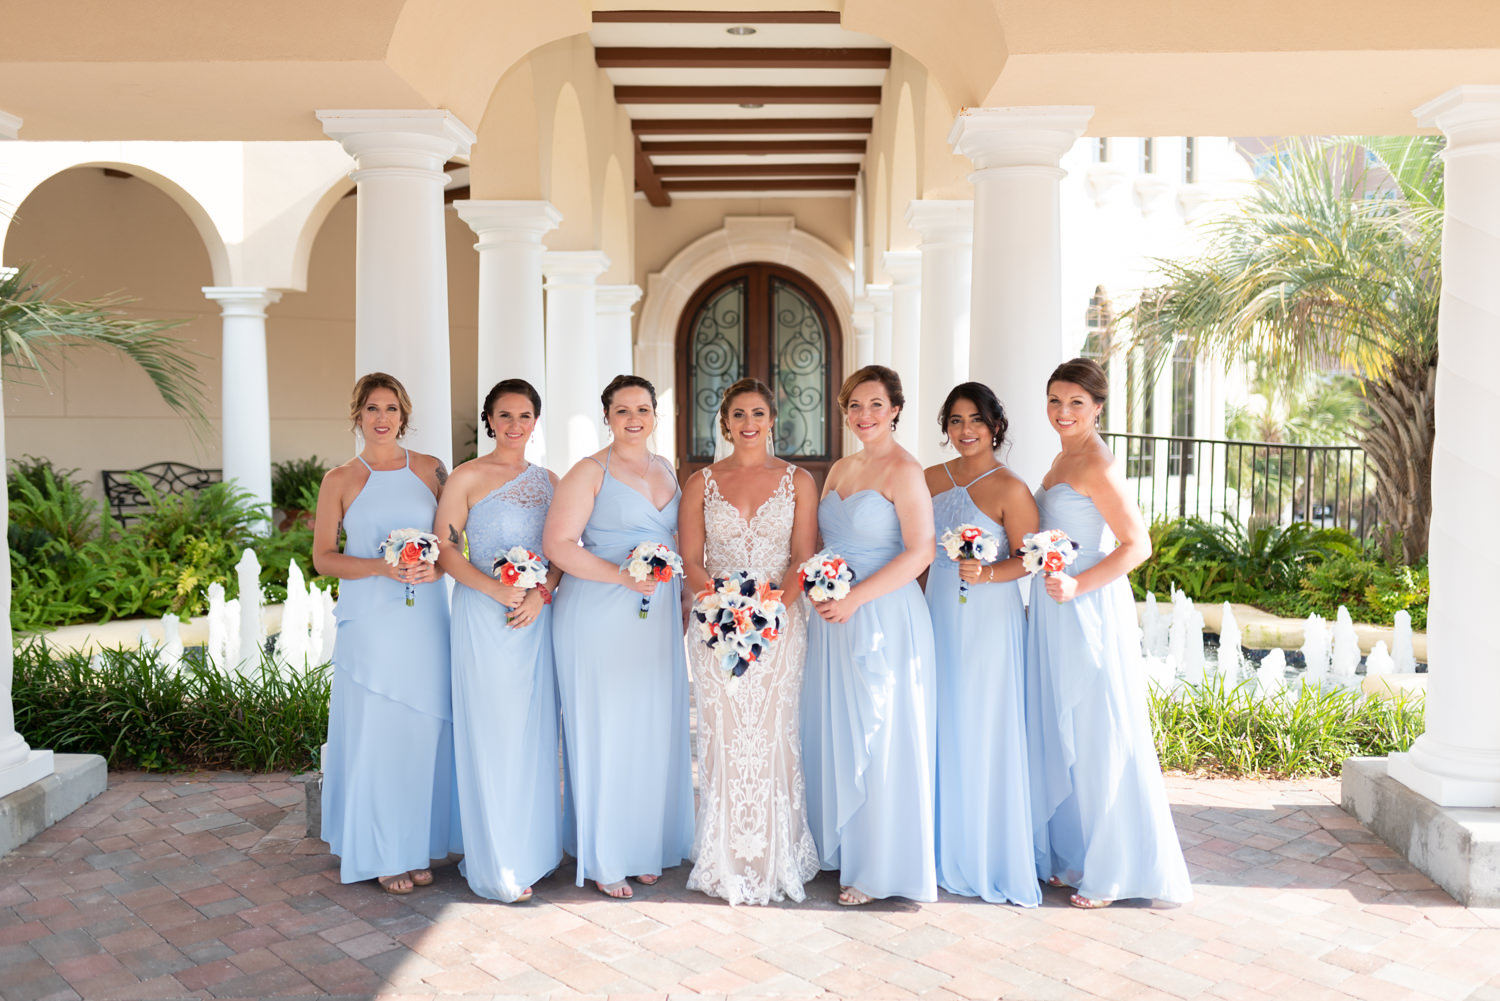 Bridal party pictures by the front columns - Grande Dunes Ocean Club - Myrtle Beach